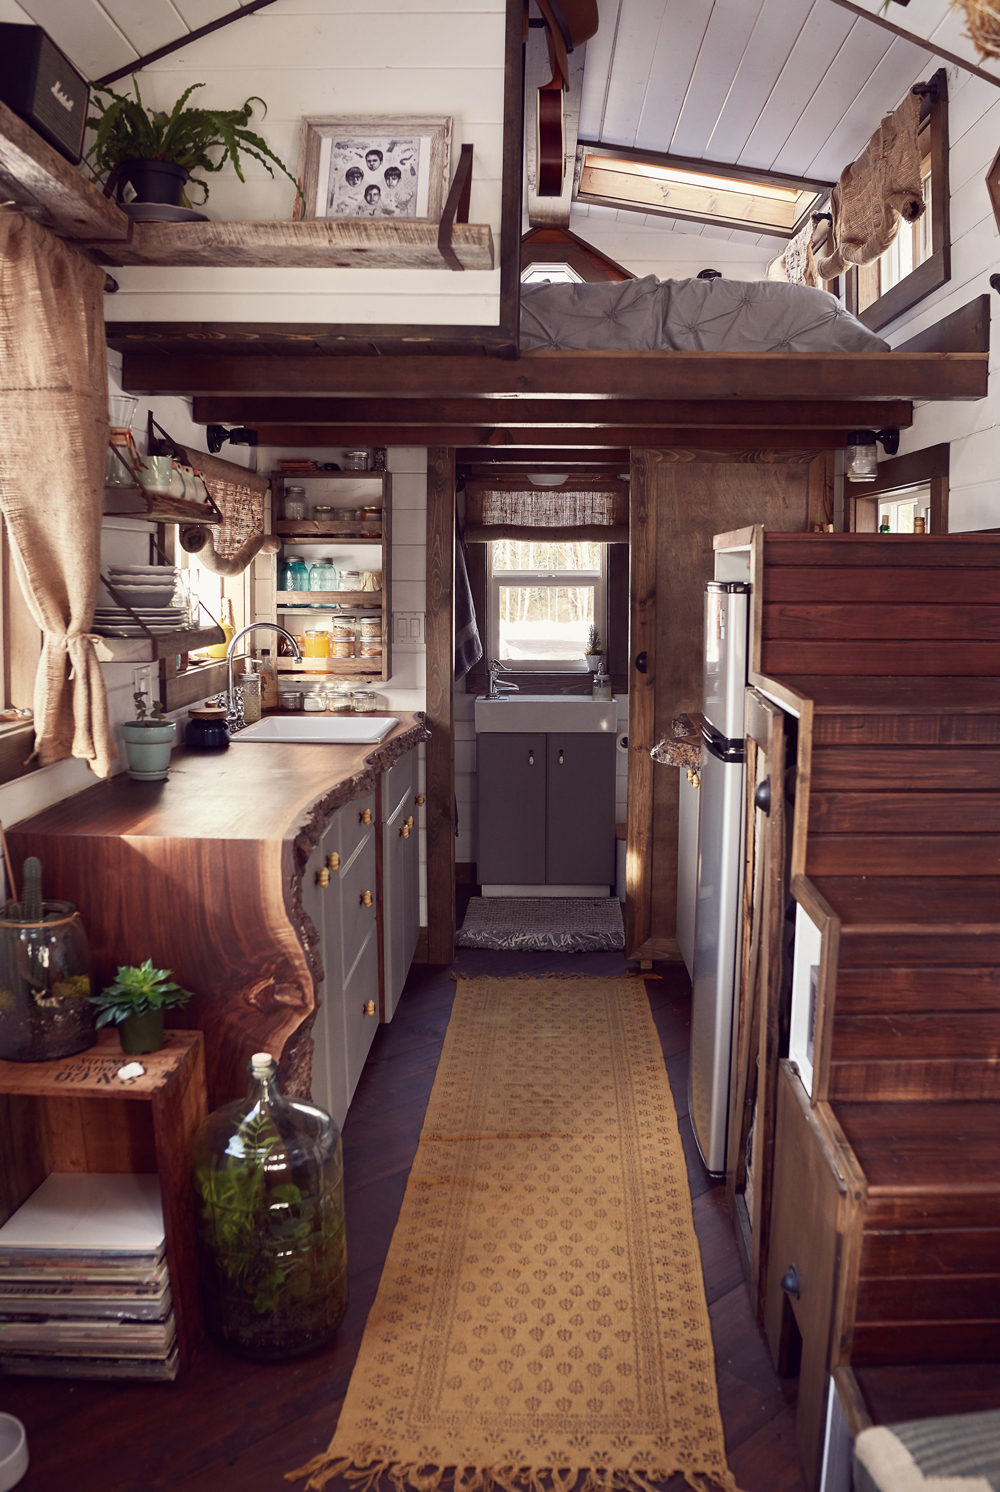 tamara_jaswal: Tiny home interior with view of kitchen and sleeping loft